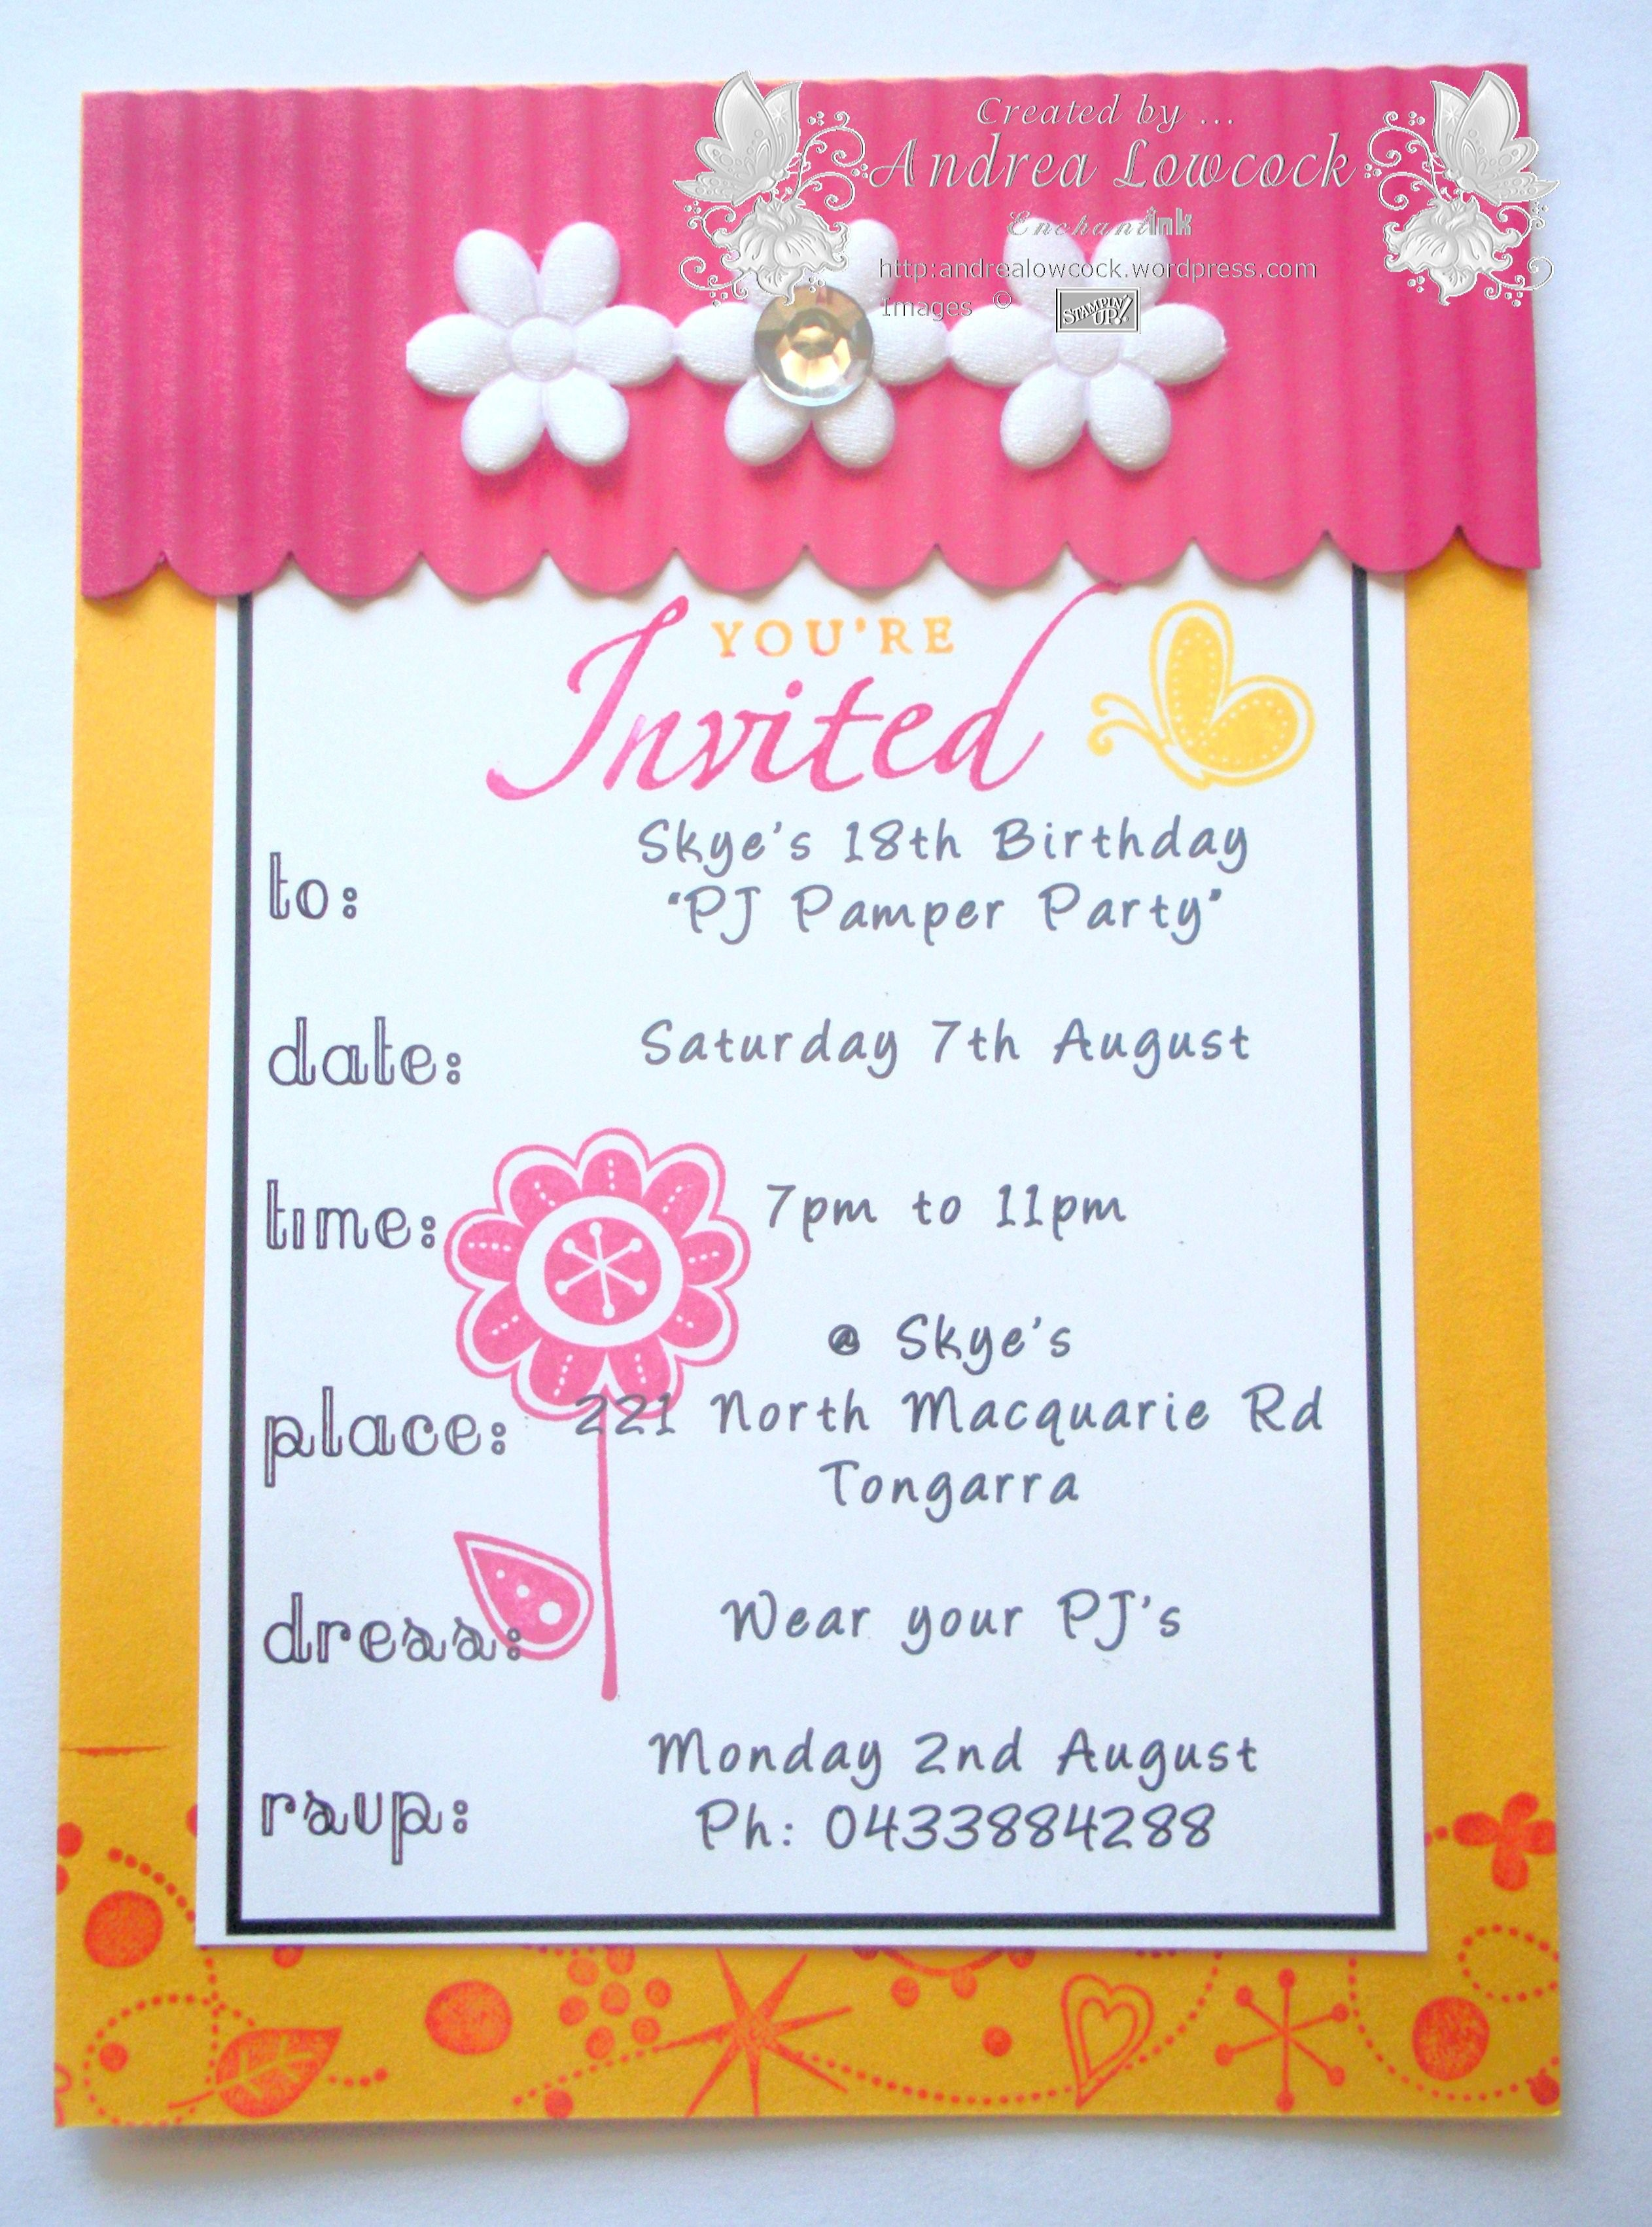 invitation card matter for birthday party ; invitation-cards-for-kiddies-party-save-birthday-party-invitation-card-matter-image-inspiration-of-cake-of-invitation-cards-for-kiddies-party